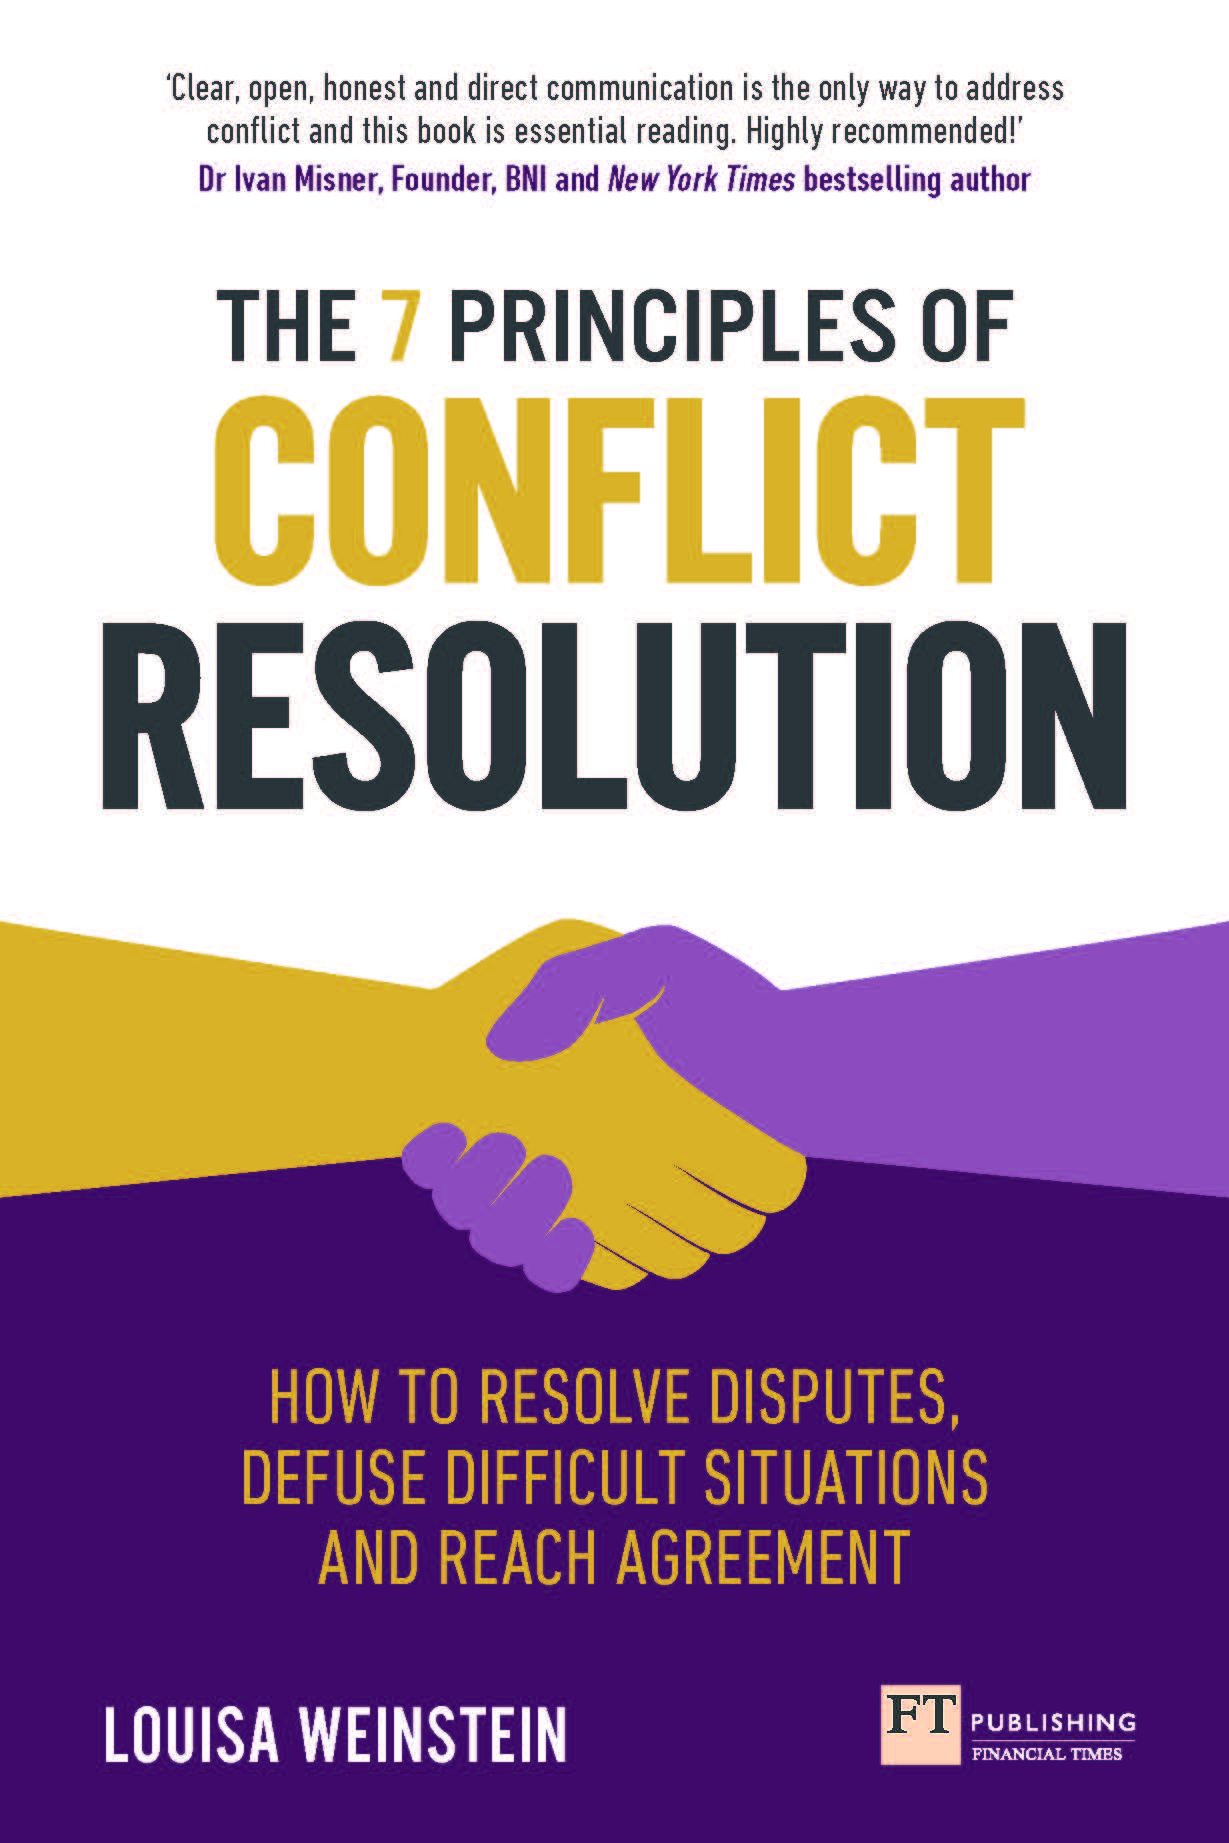 7 Principles of Conflict Resolution